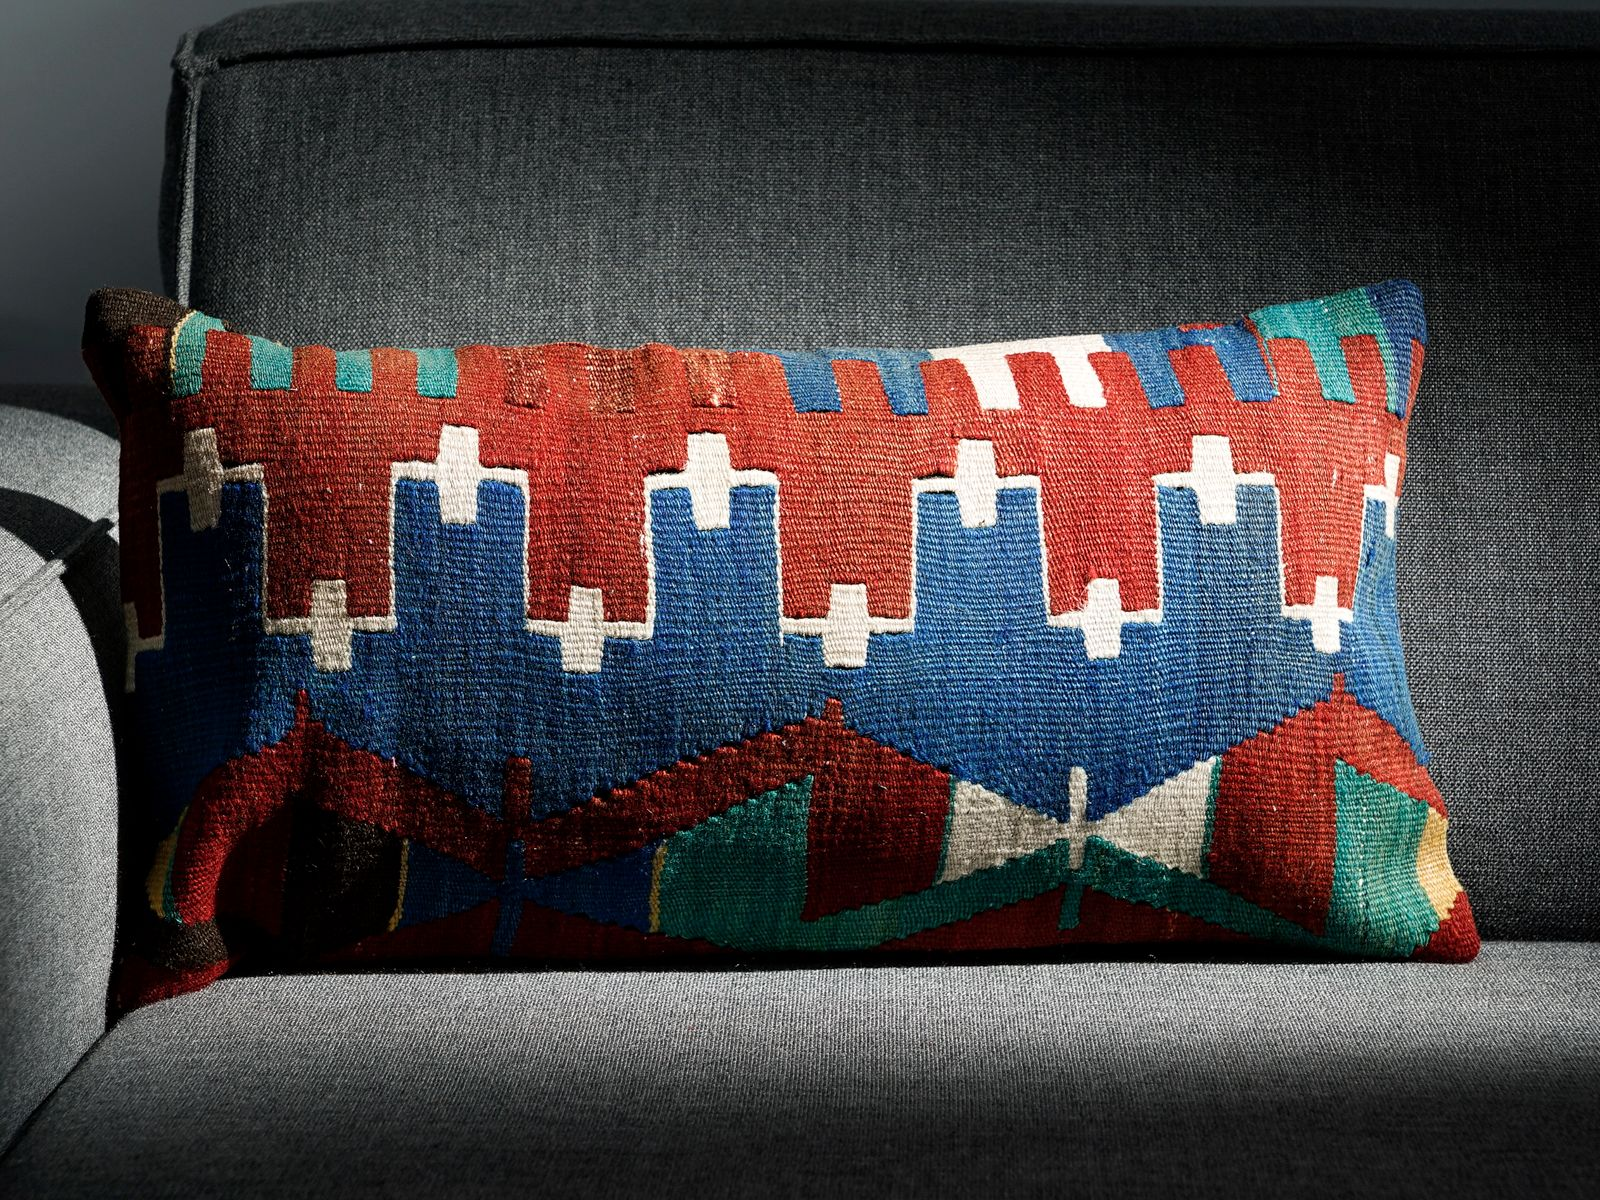 Groovy Southwesten White Red Blue Wool Cotton Lumbar Kilim Pillow By Zencef 2011 Evergreenethics Interior Chair Design Evergreenethicsorg